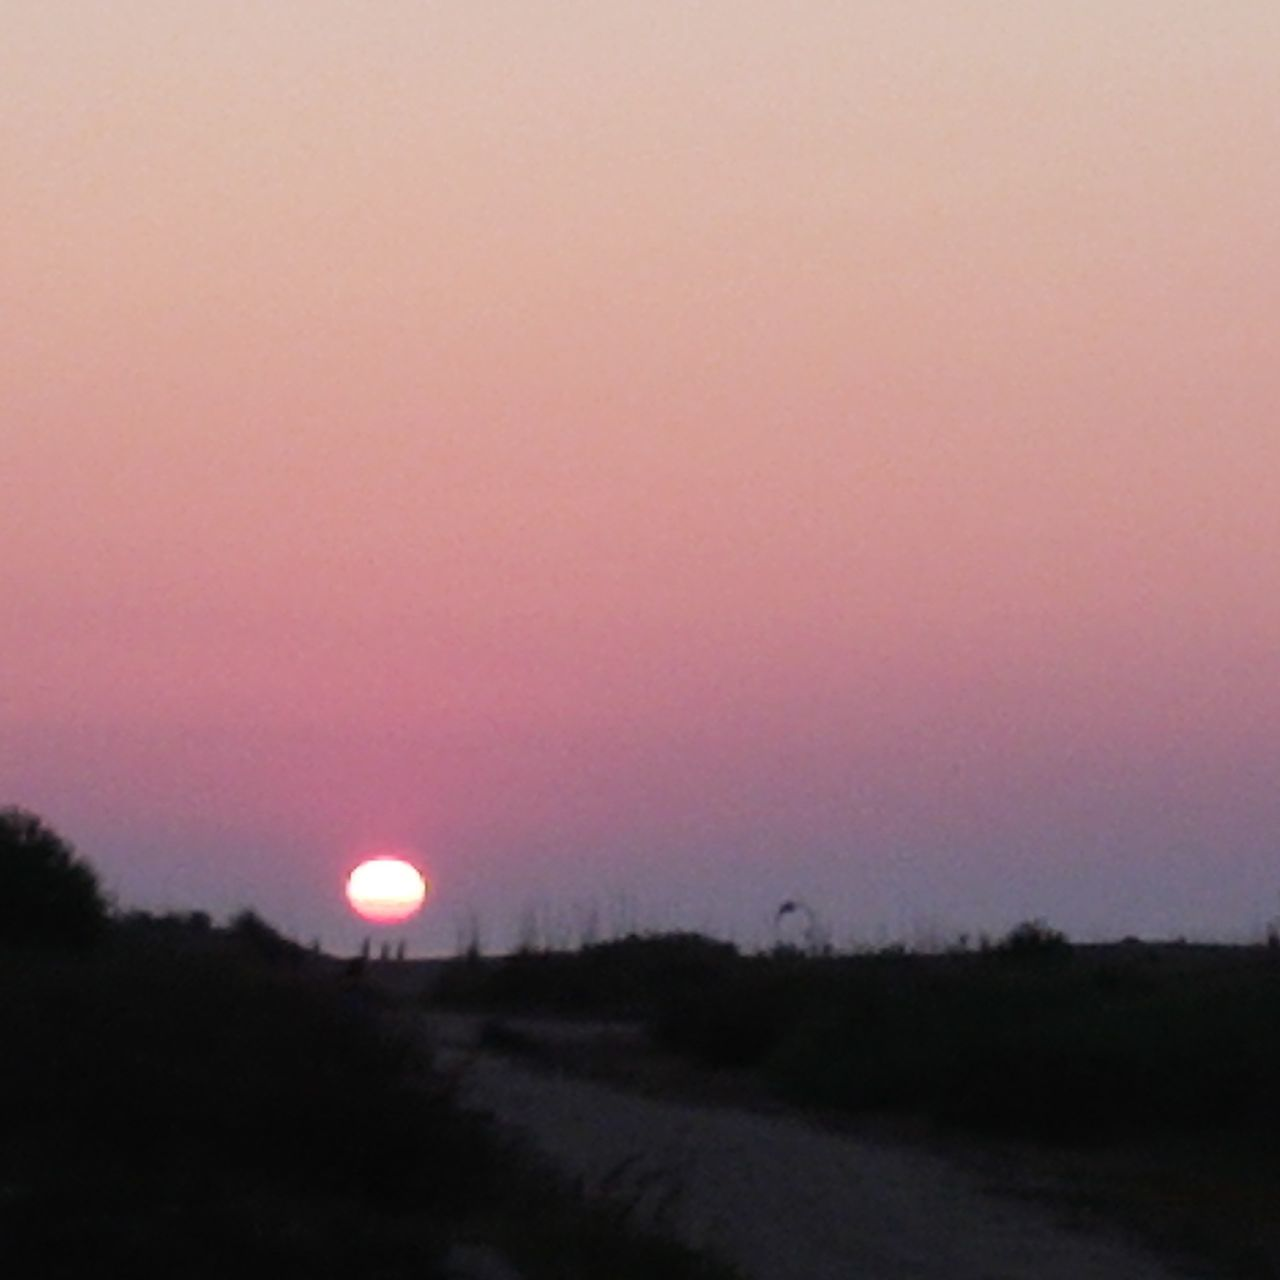 beauty in nature, sunset, nature, scenics, moon, field, tranquil scene, tranquility, no people, landscape, outdoors, sun, sky, clear sky, tree, day, astronomy